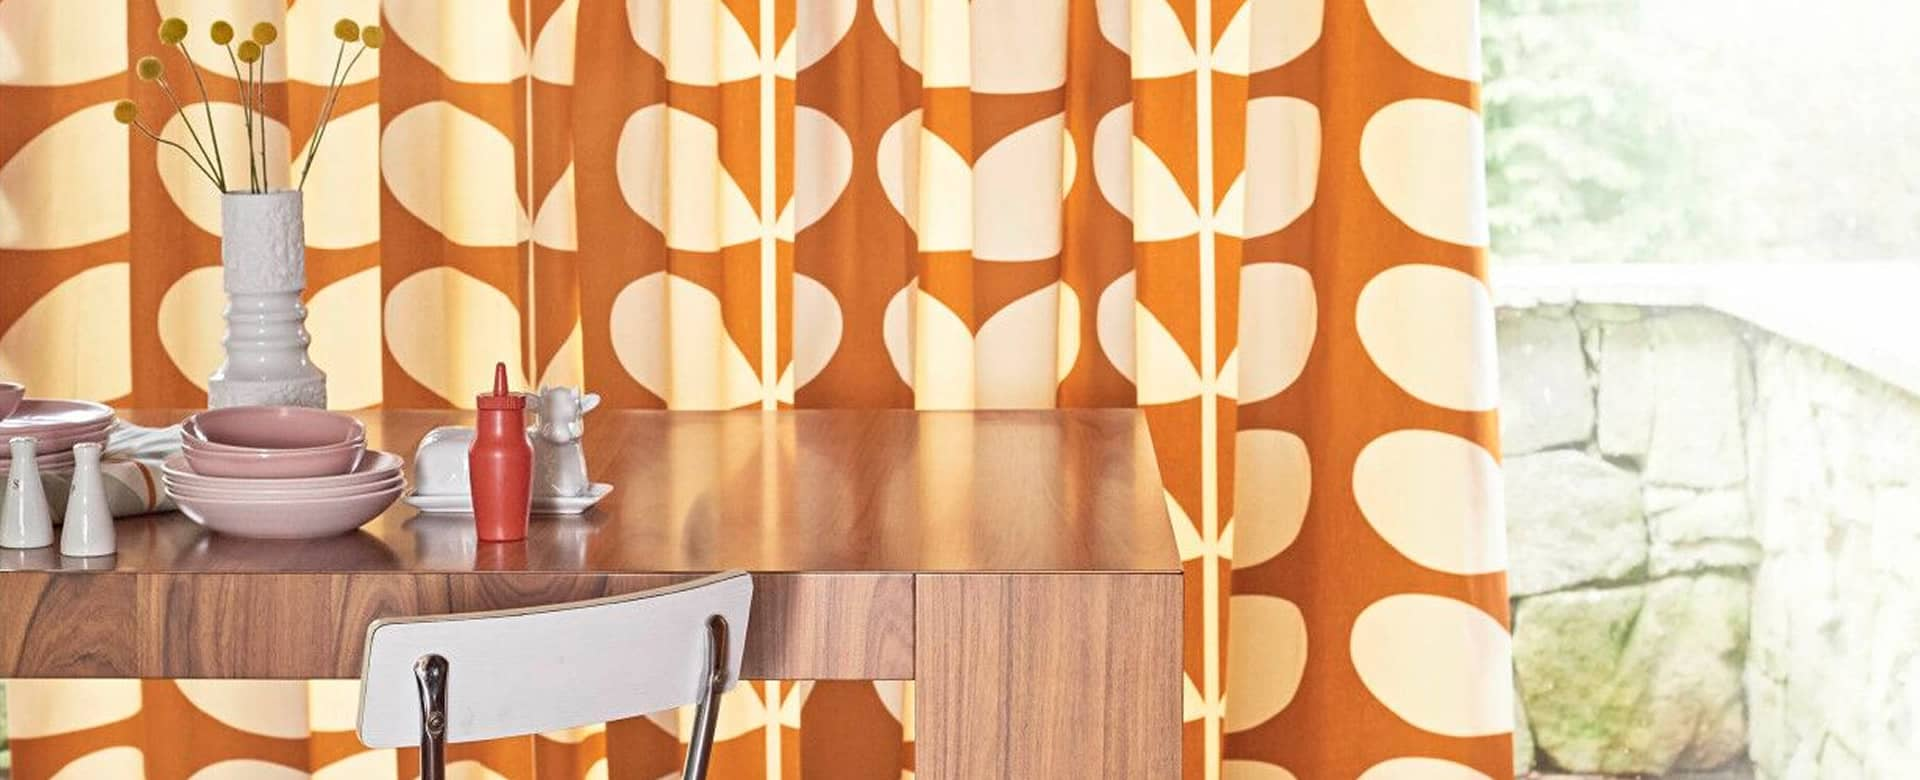 Orla Kiely range of Made to Measure Curtains & Blinds